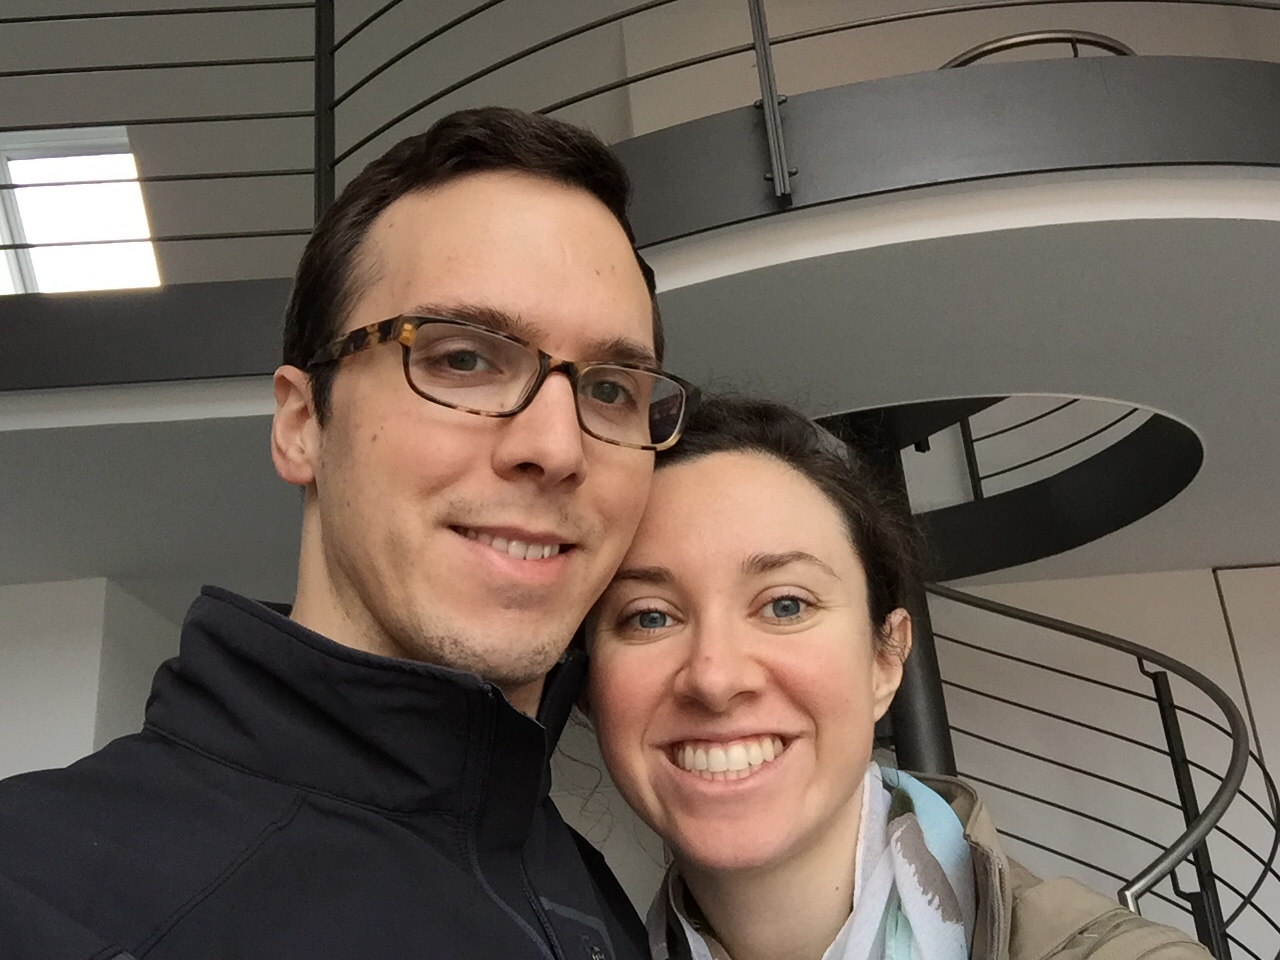 Our first apartment selfie... complete with puffy eyes courtesy of jet lag.